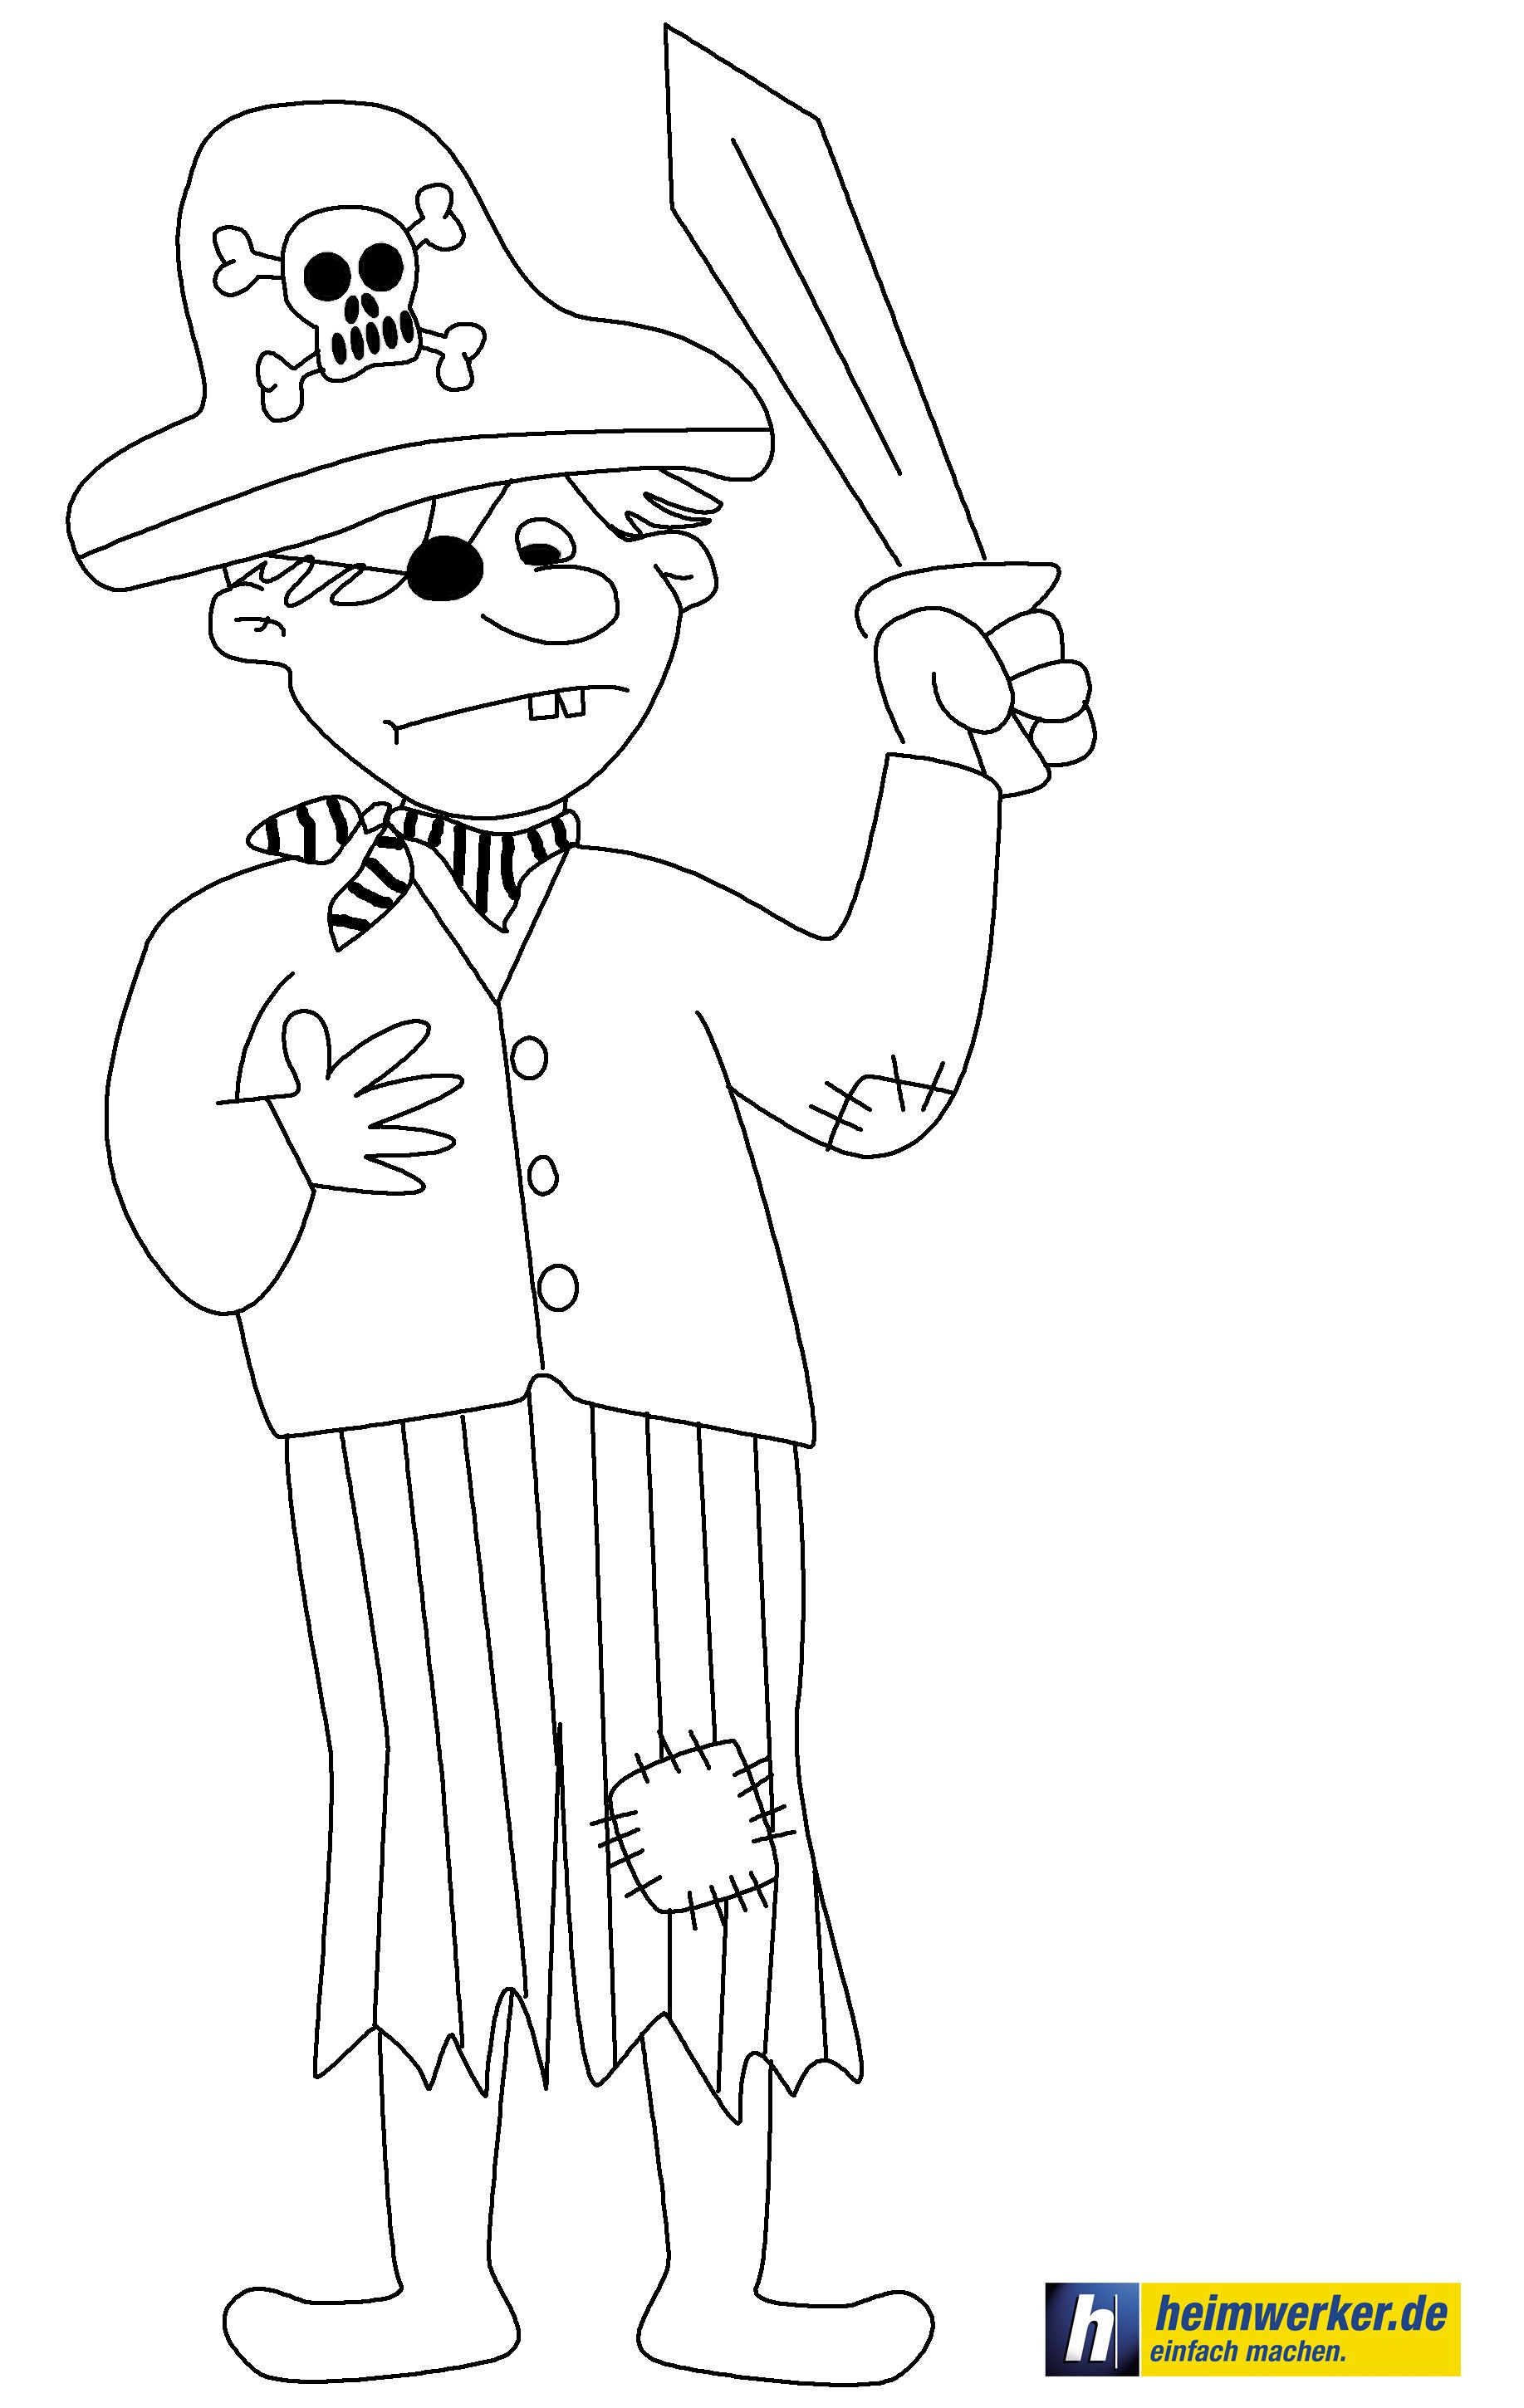 Pirate coloring page Piraten Ausmalbild | Malvorlagen für Kinder ...